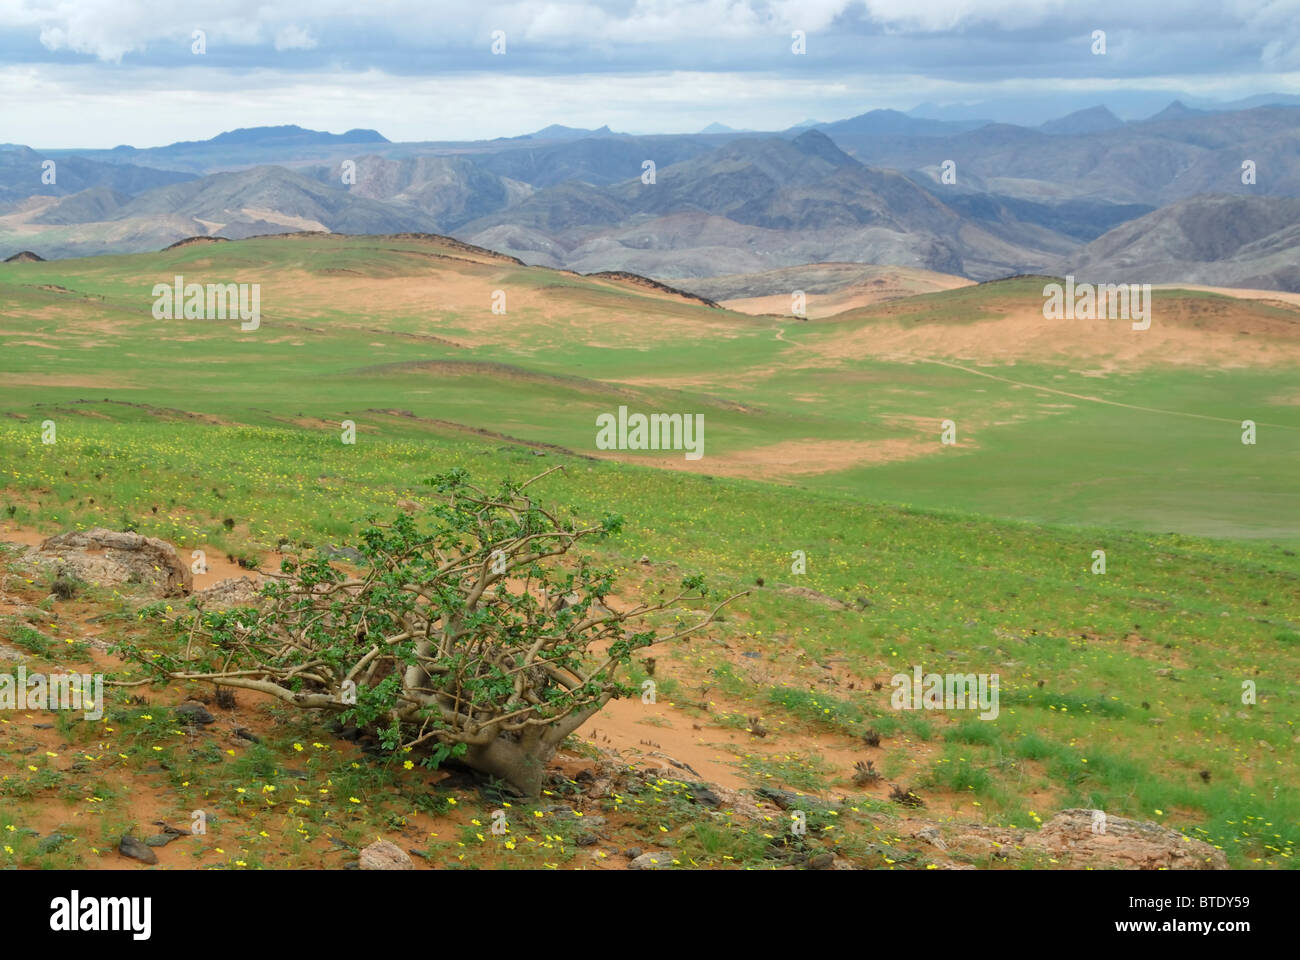 Scenic view of looking down into Kunene River Valley and Serra Cafema mountains, showing green flush from recent - Stock Image